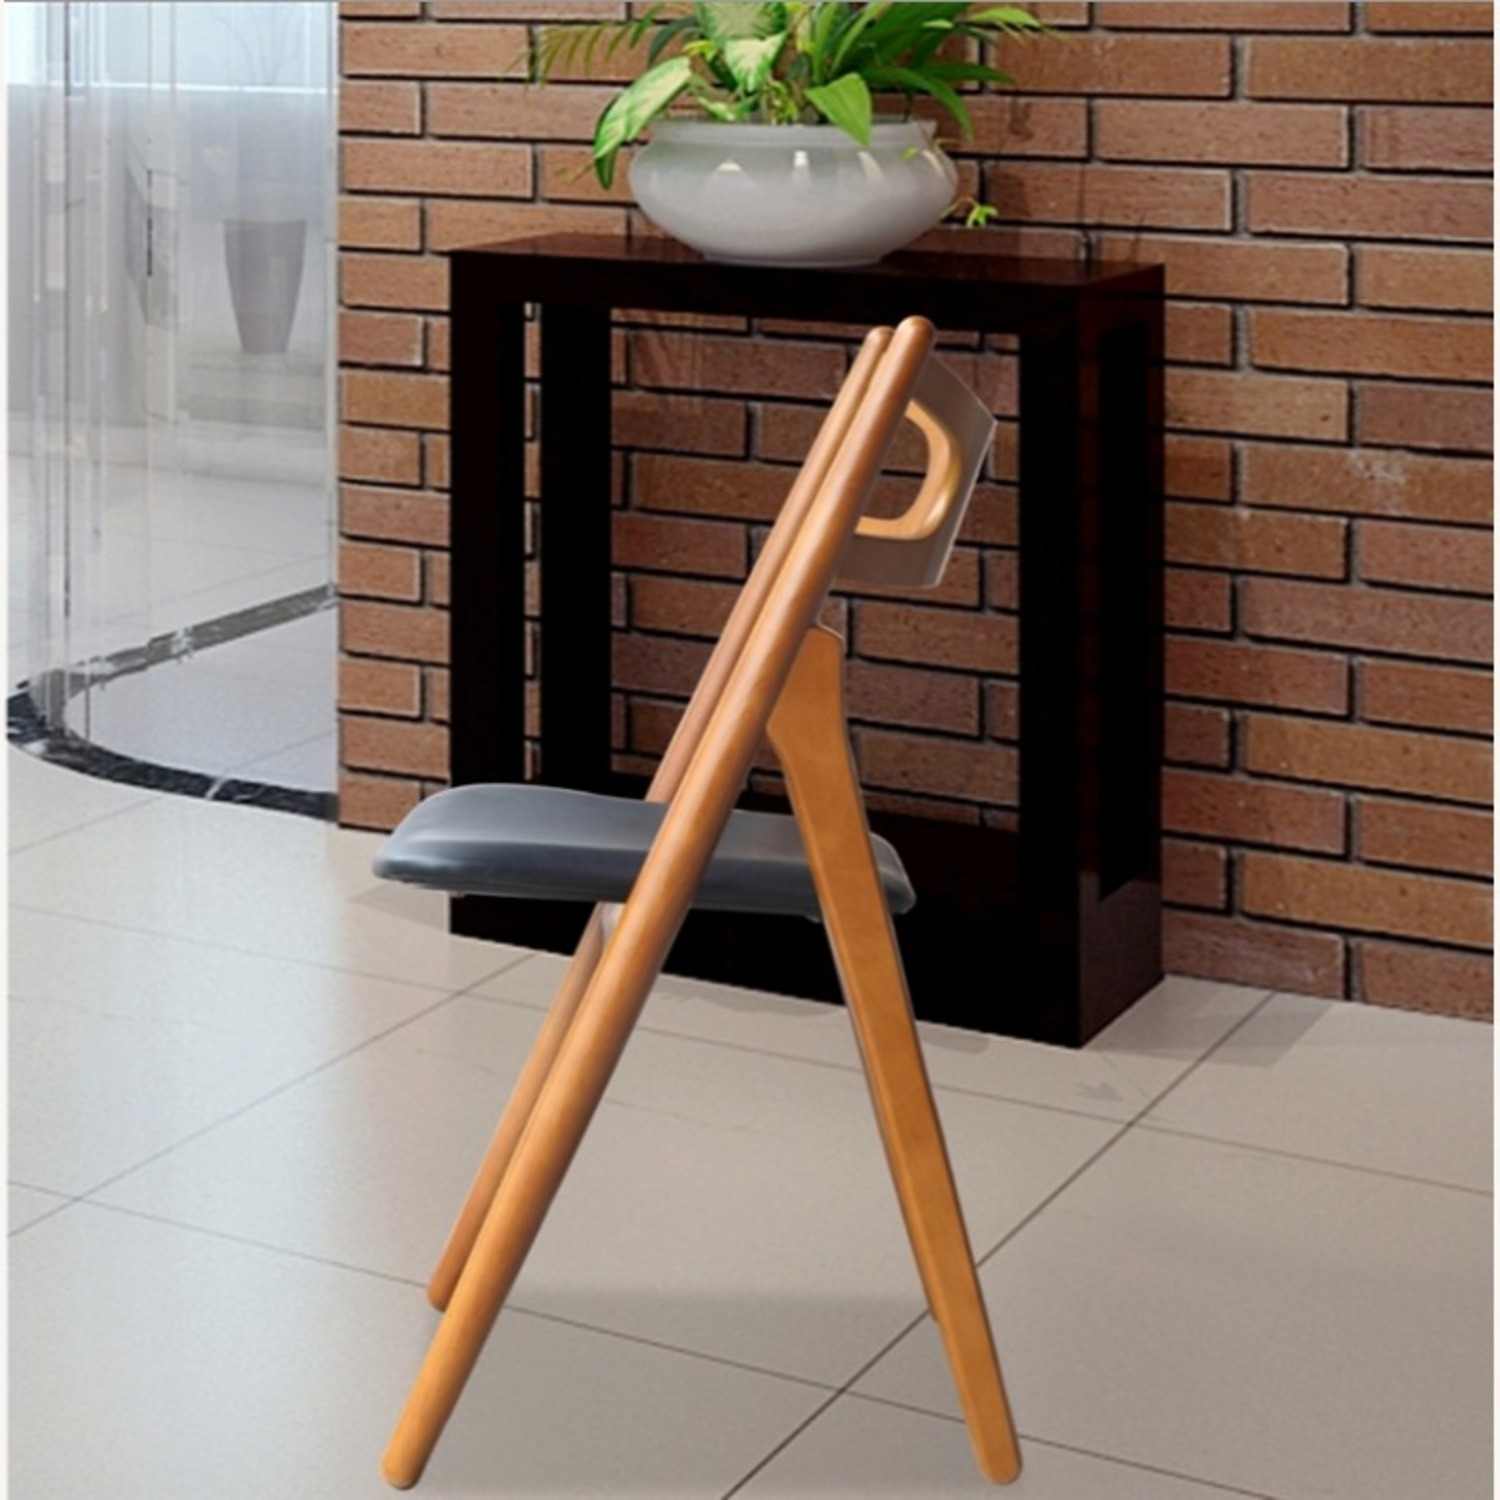 Modern Dining Chair In Walnut Wood Frame - image-5